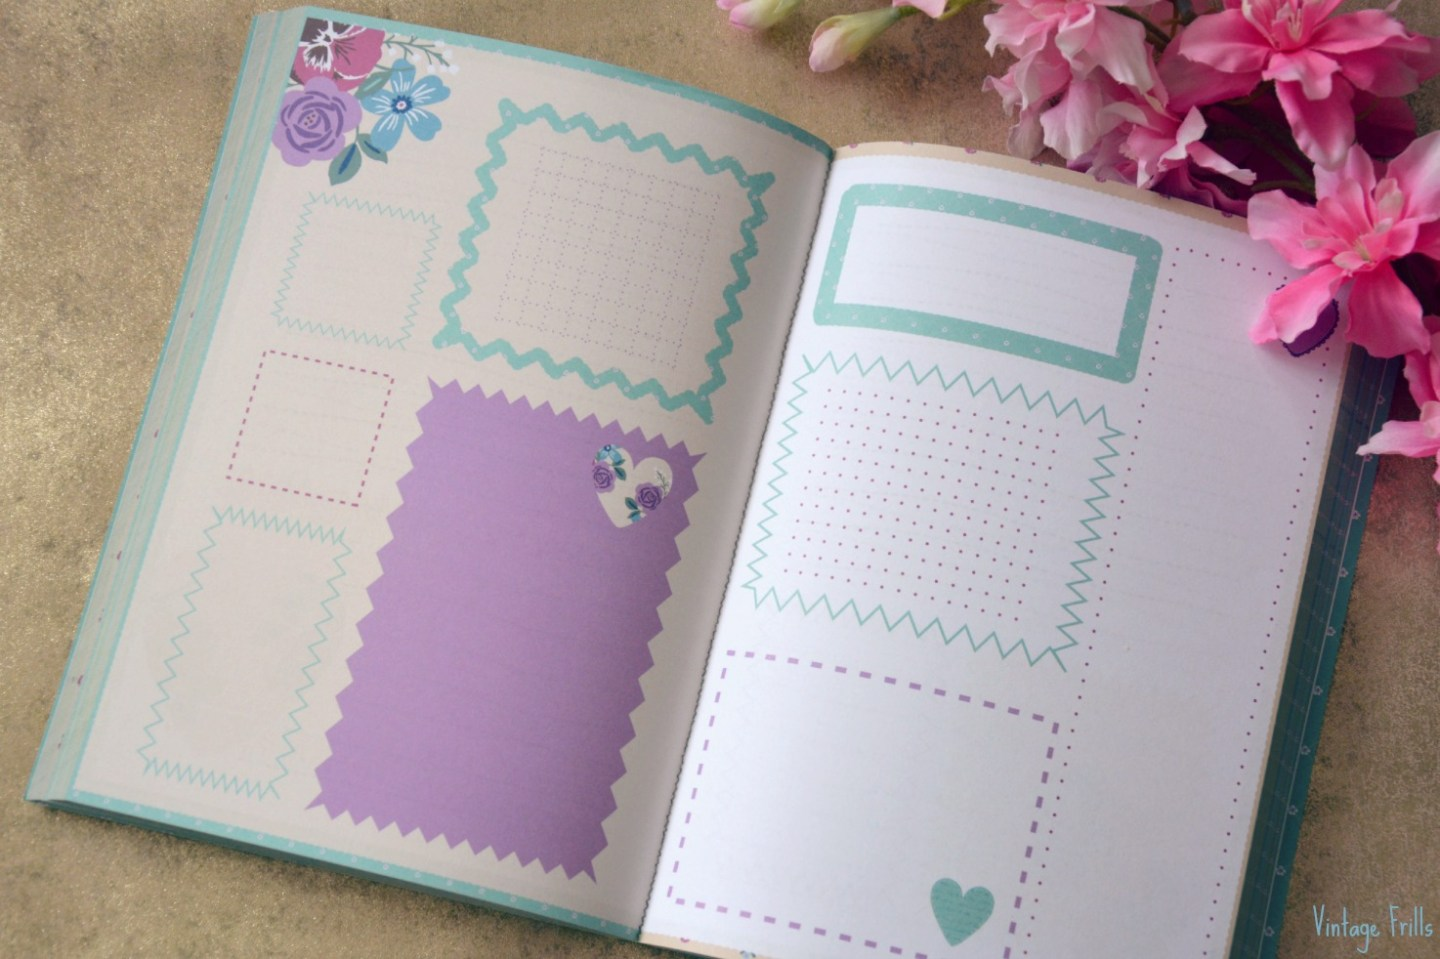 Wilkos Notebook